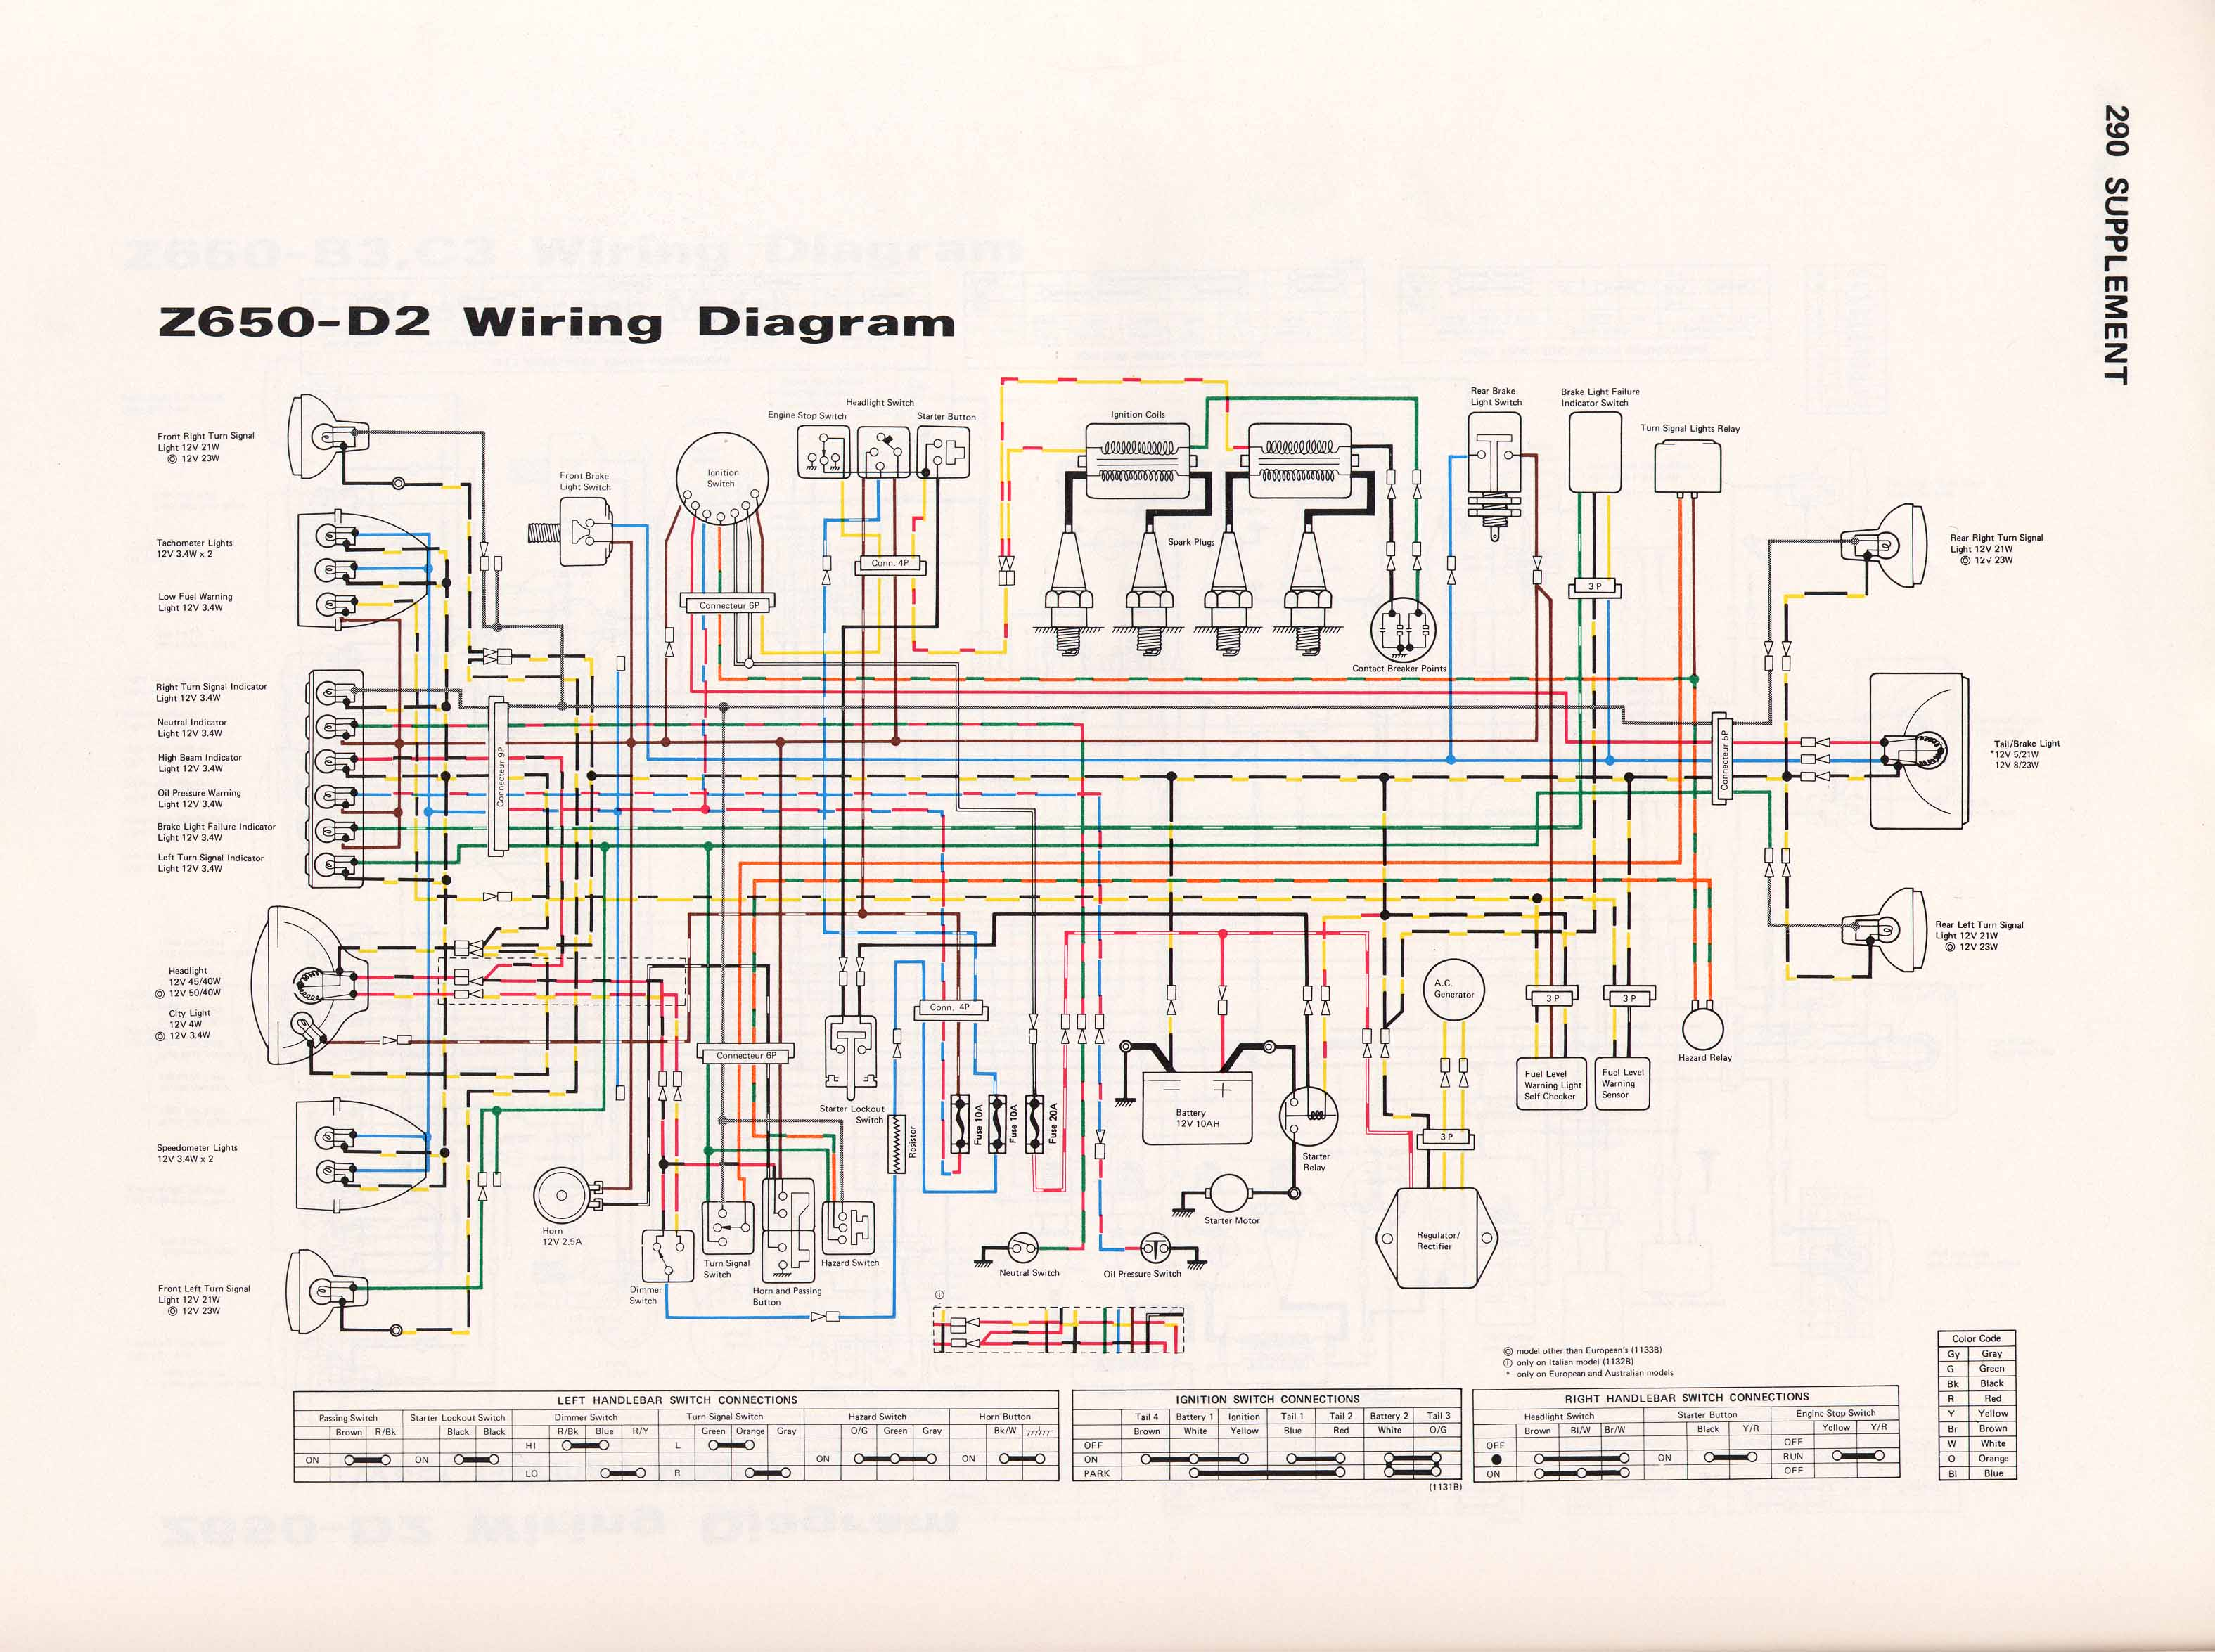 wire diagram pioneer z1 best part of wiring diagramz1 wiring diagram g9 igesetze de \\u2022z1 wiring diagram 1t schwabenschamanen de u2022 rh 1t